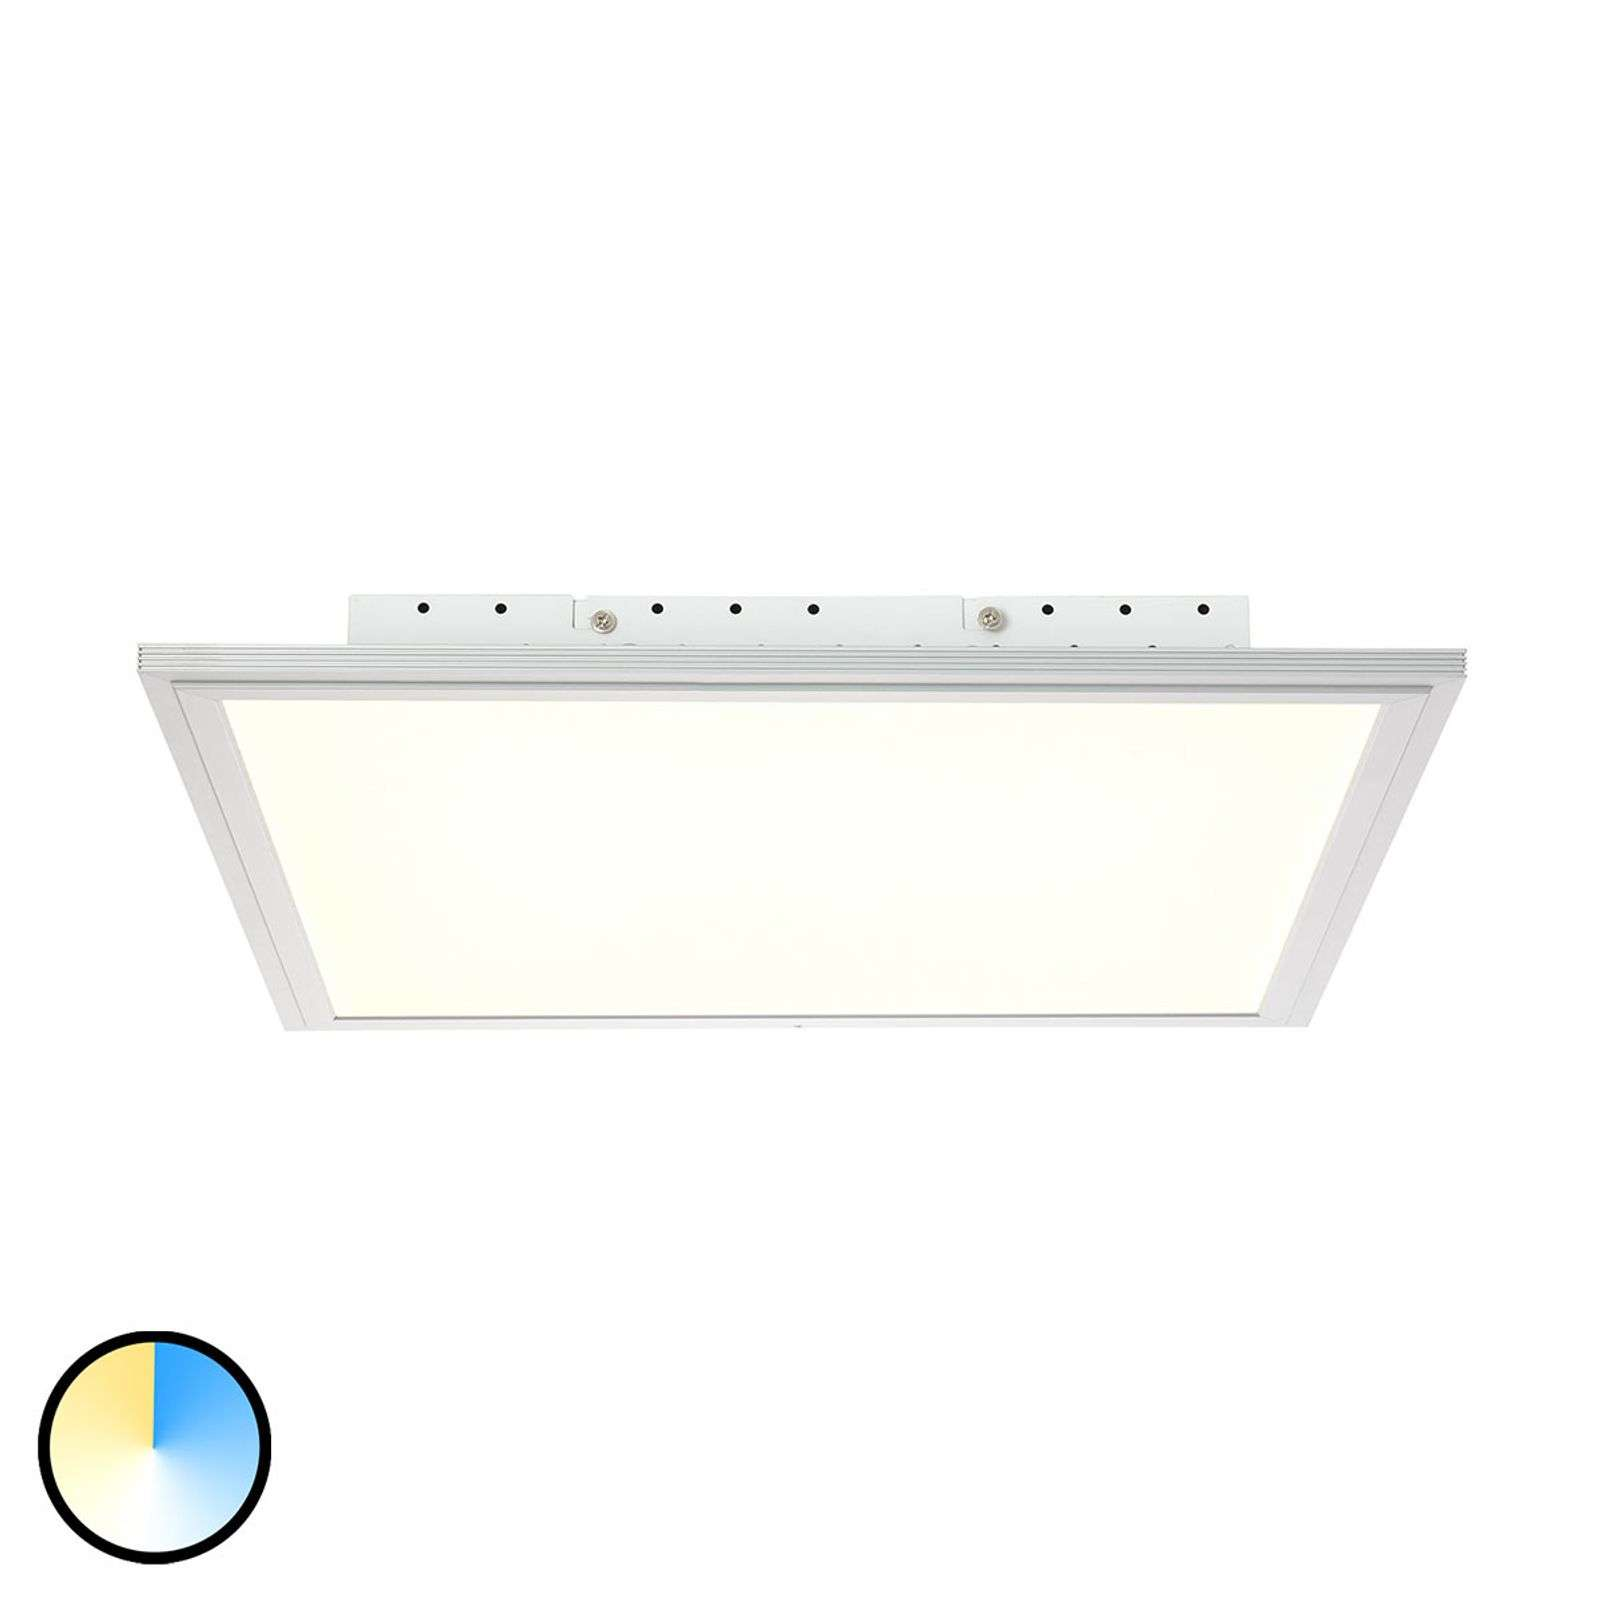 Brilliant WiZ LED plafondlamp Flat - 42 cm